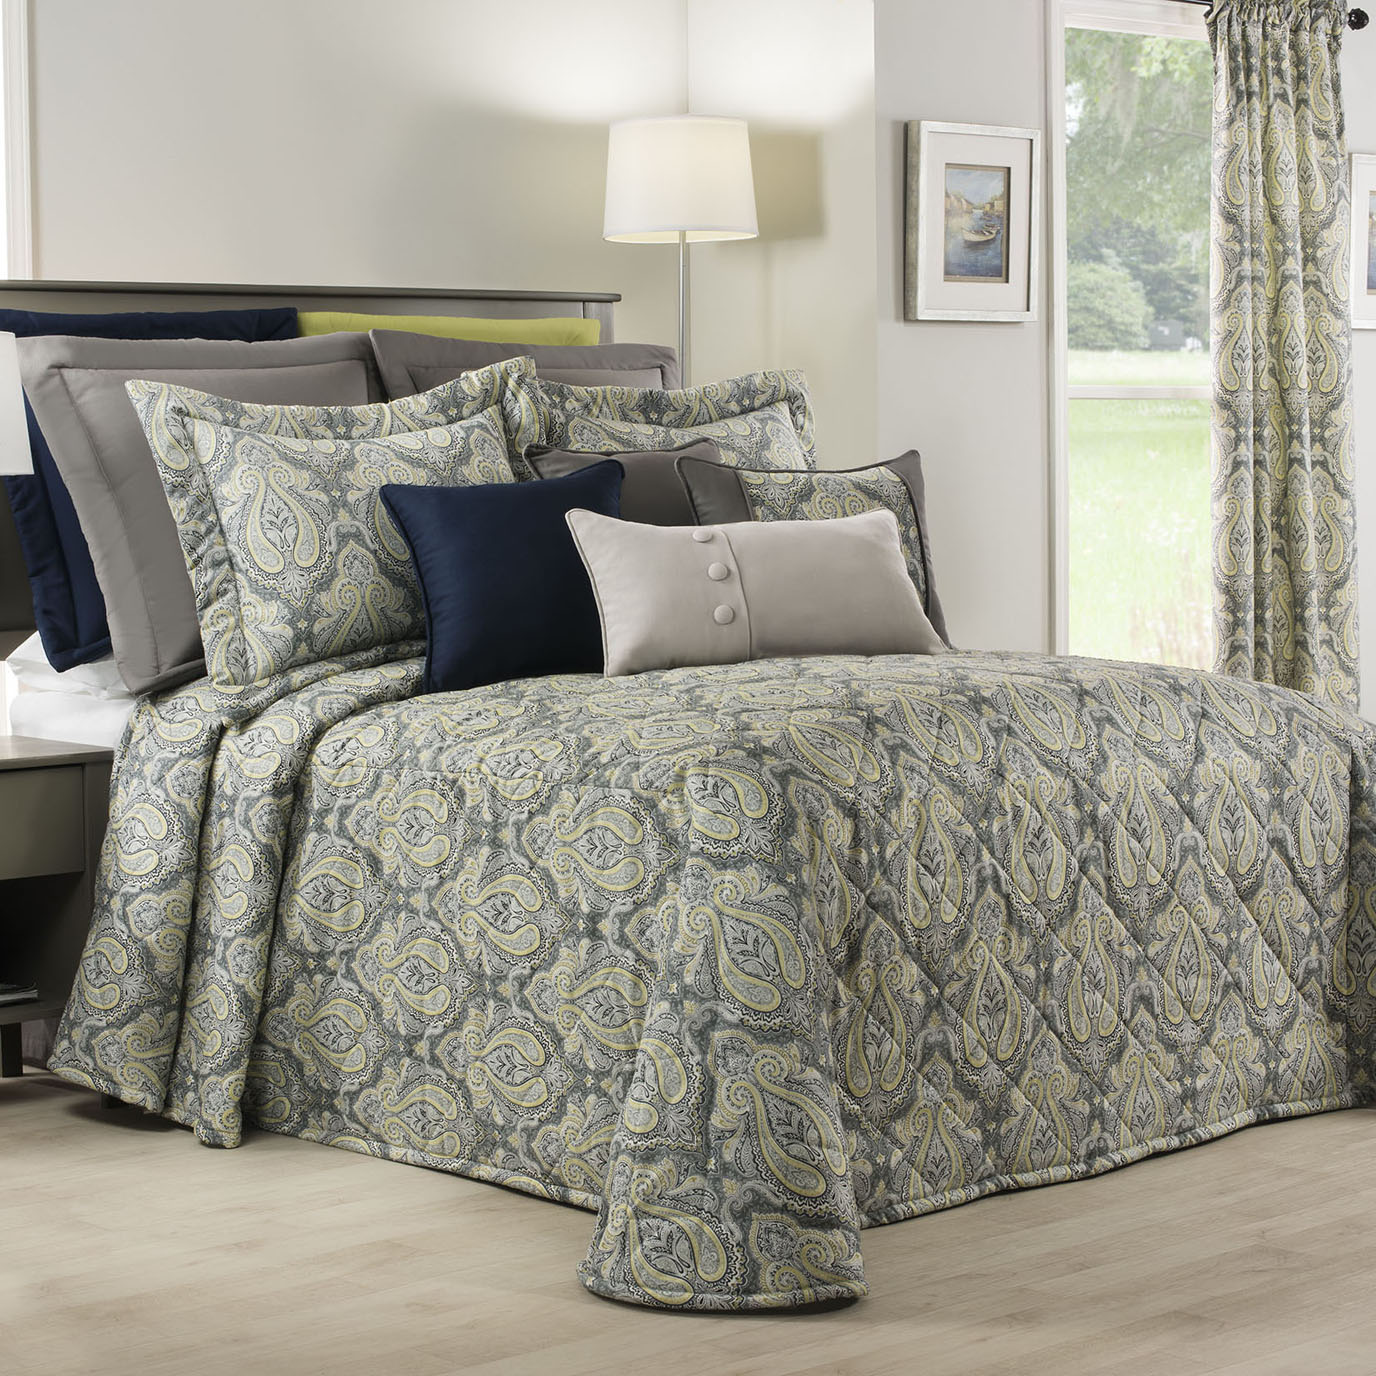 Park Avenue Queen Bedspread